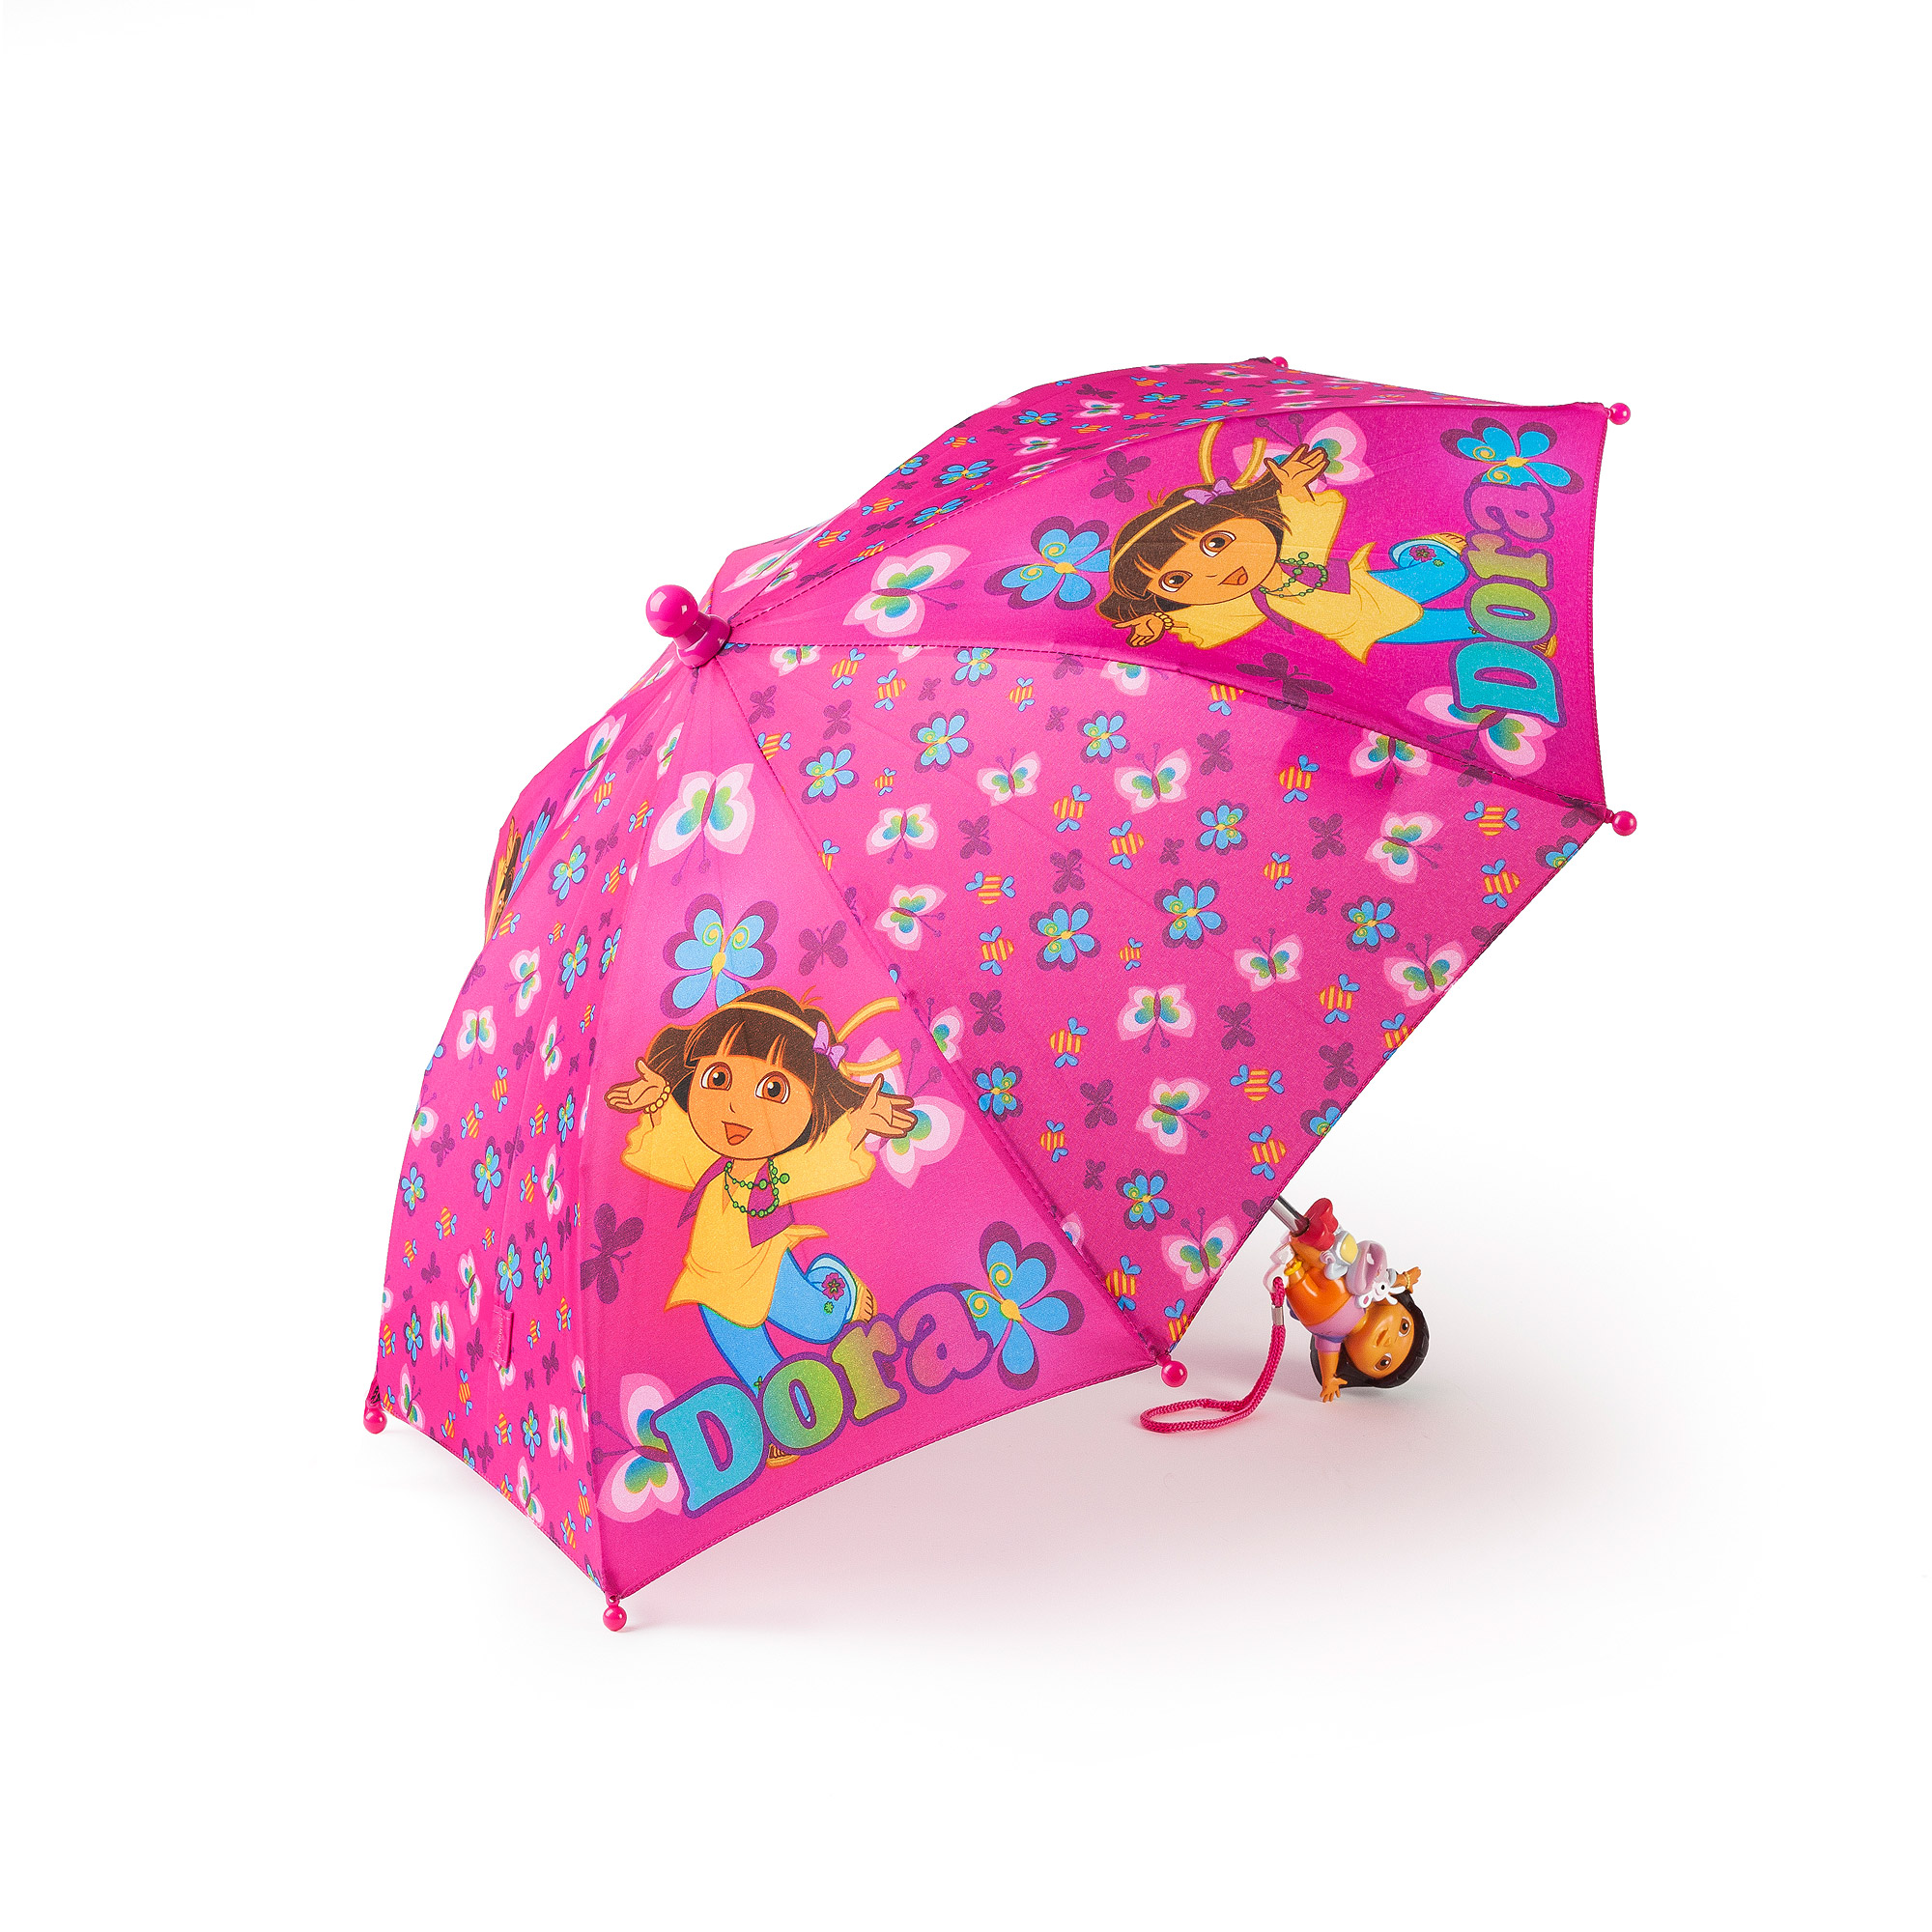 Toddler Girls Nickelodeon Dora the Explorer Pink Fashion Rain Umbrella Ages 3+